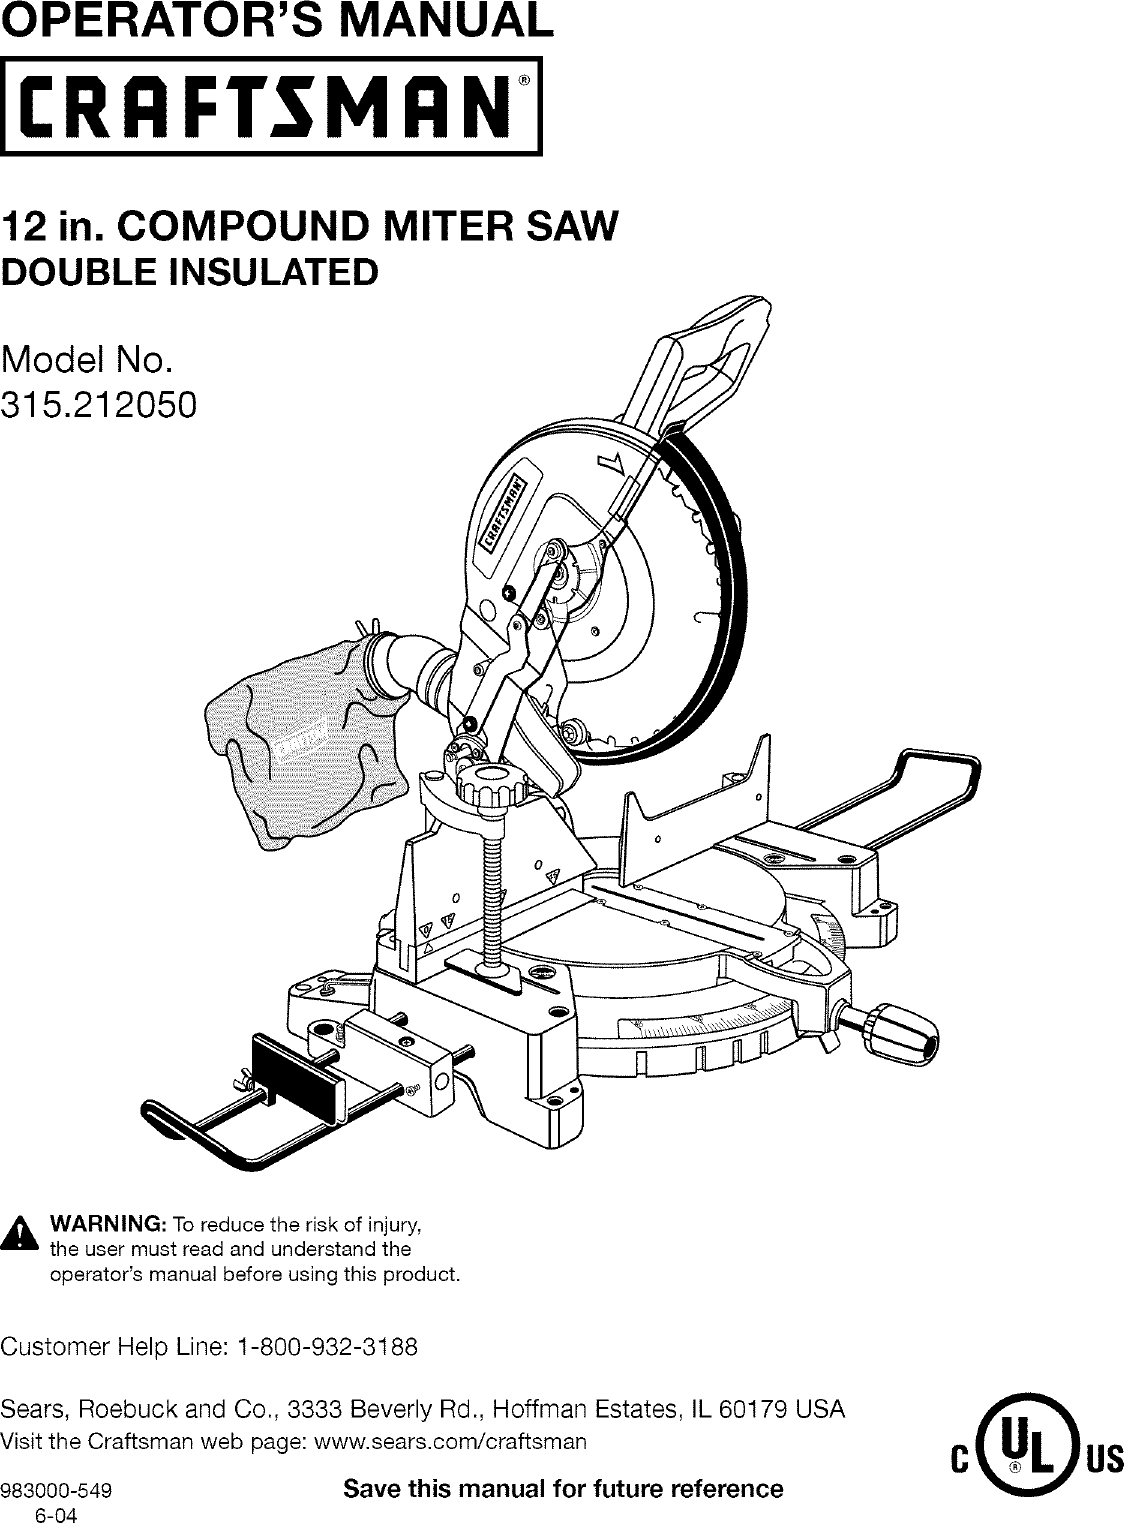 Craftsman 315212050 User Manual MITER SAW Manuals And